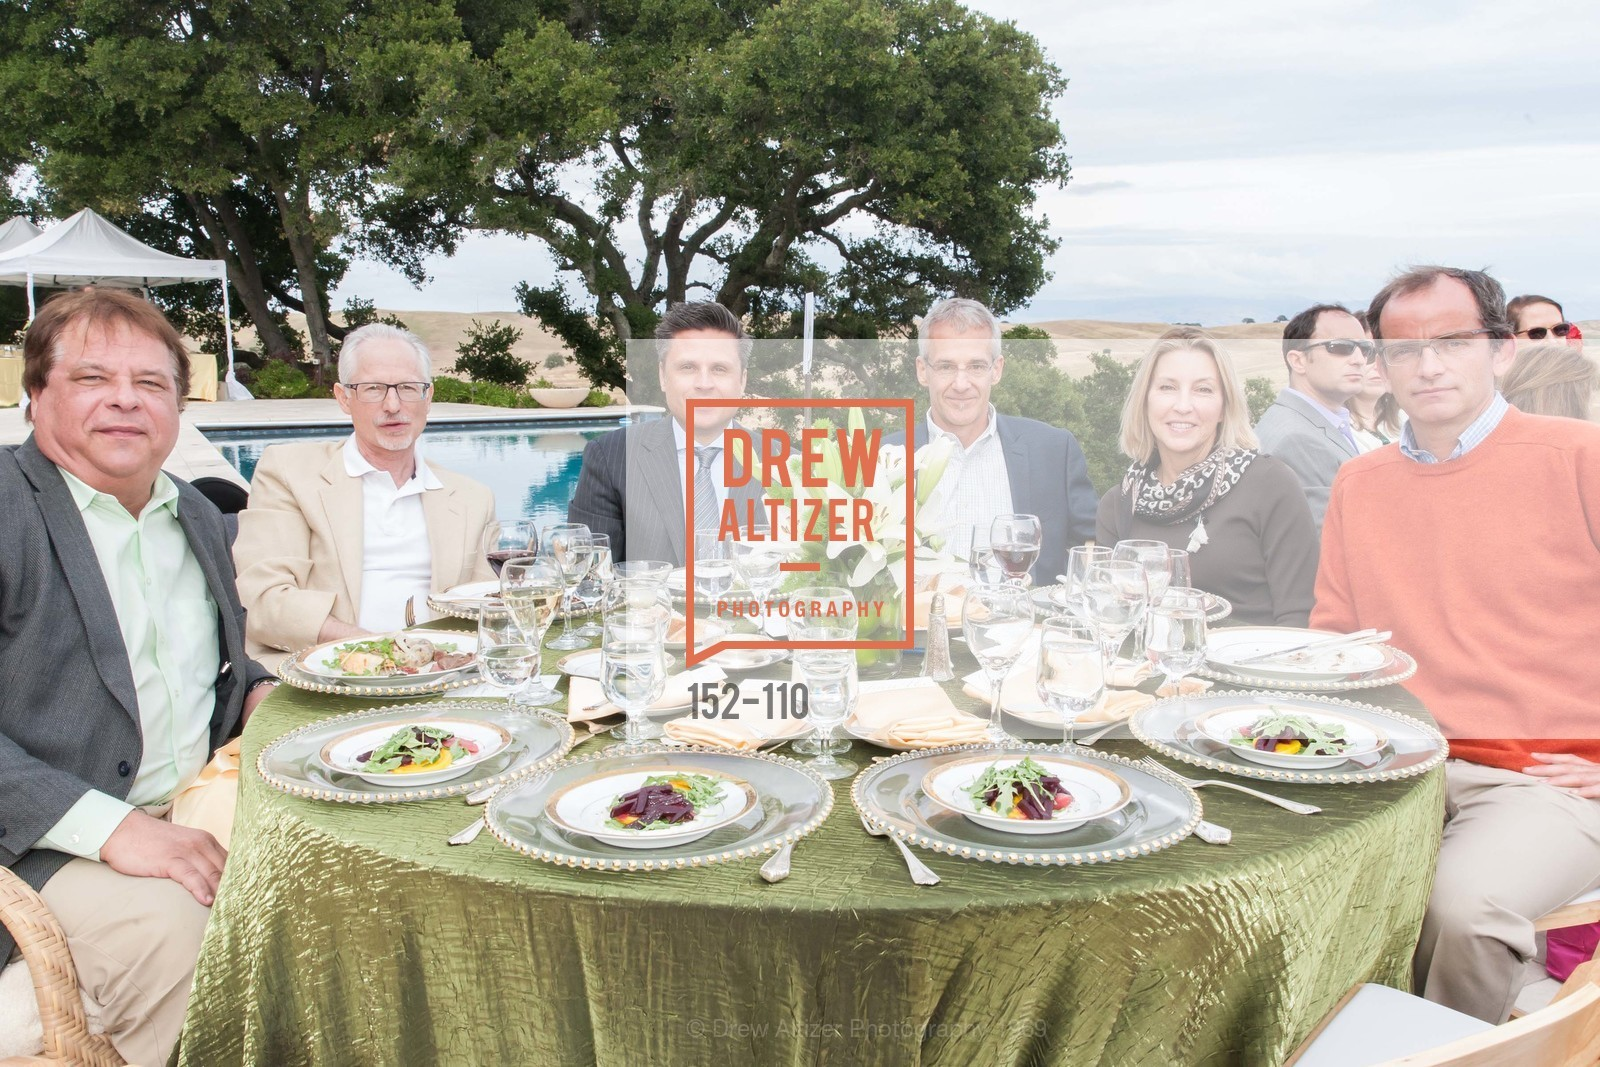 Lloyd Taub, Whitney Richards, Paul Newby, Chris Newby, LYME AID 2015 Benefiting the Bay Area Lyme Foundation, Private Residence, May 16th, 2015,Drew Altizer, Drew Altizer Photography, full-service event agency, private events, San Francisco photographer, photographer California